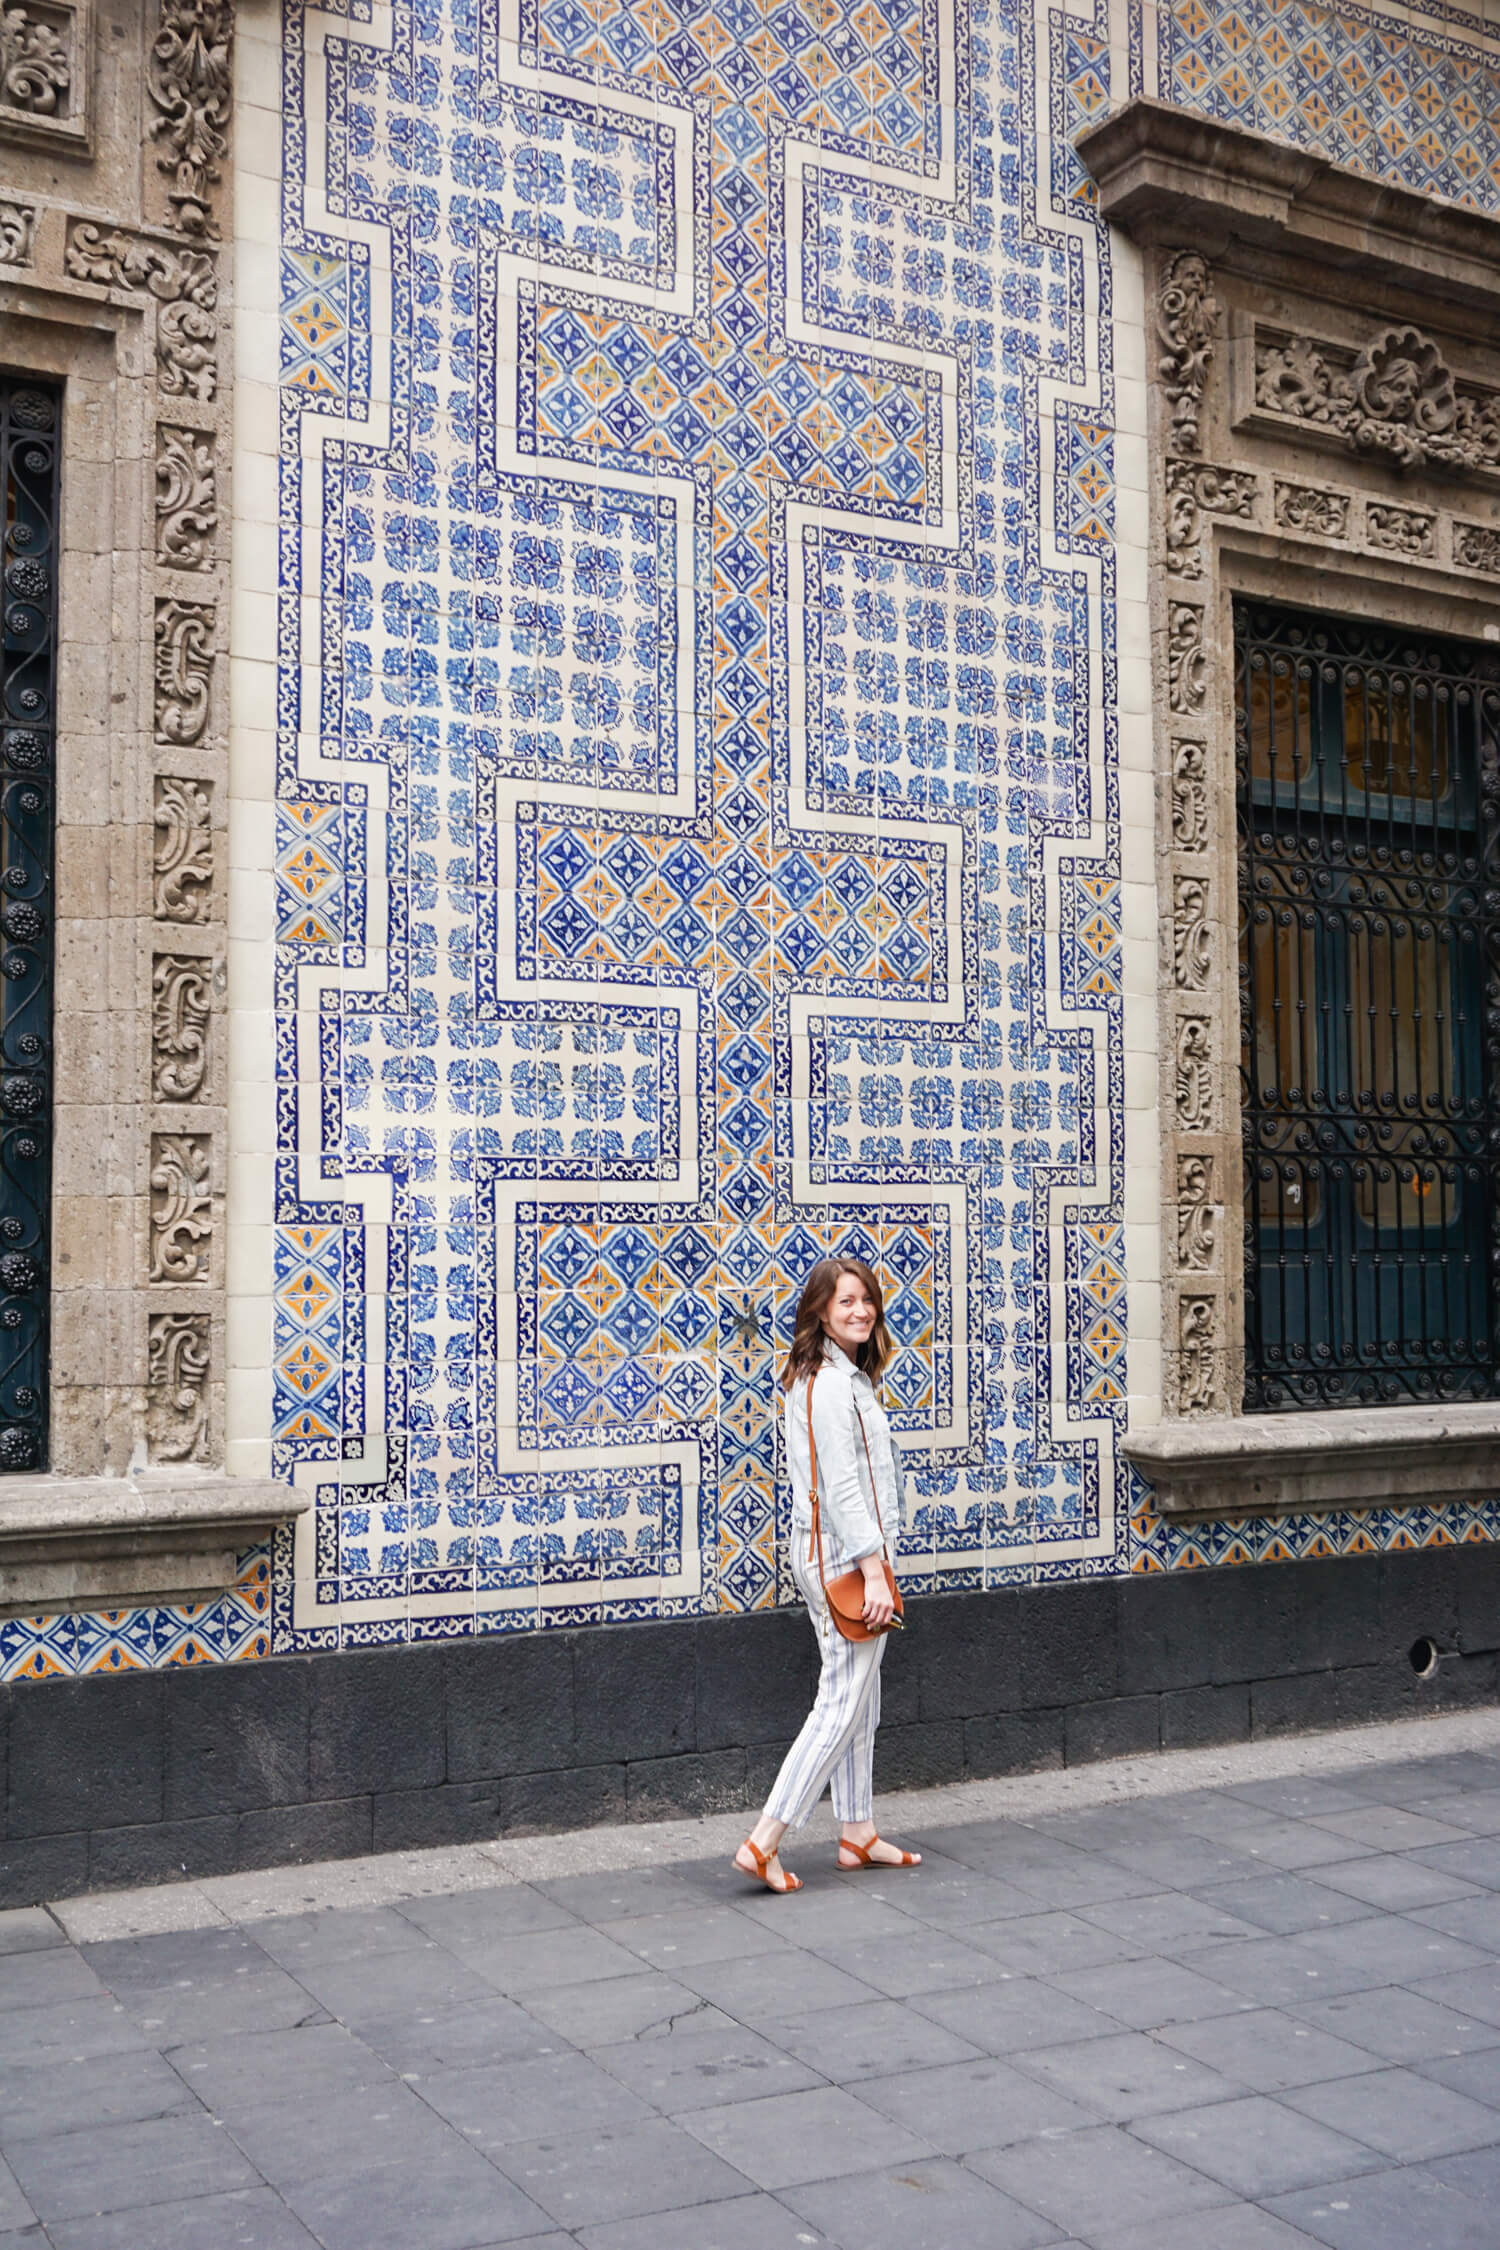 What To Do in Mexico City: Casa de los Azulejos (House of Tiles)